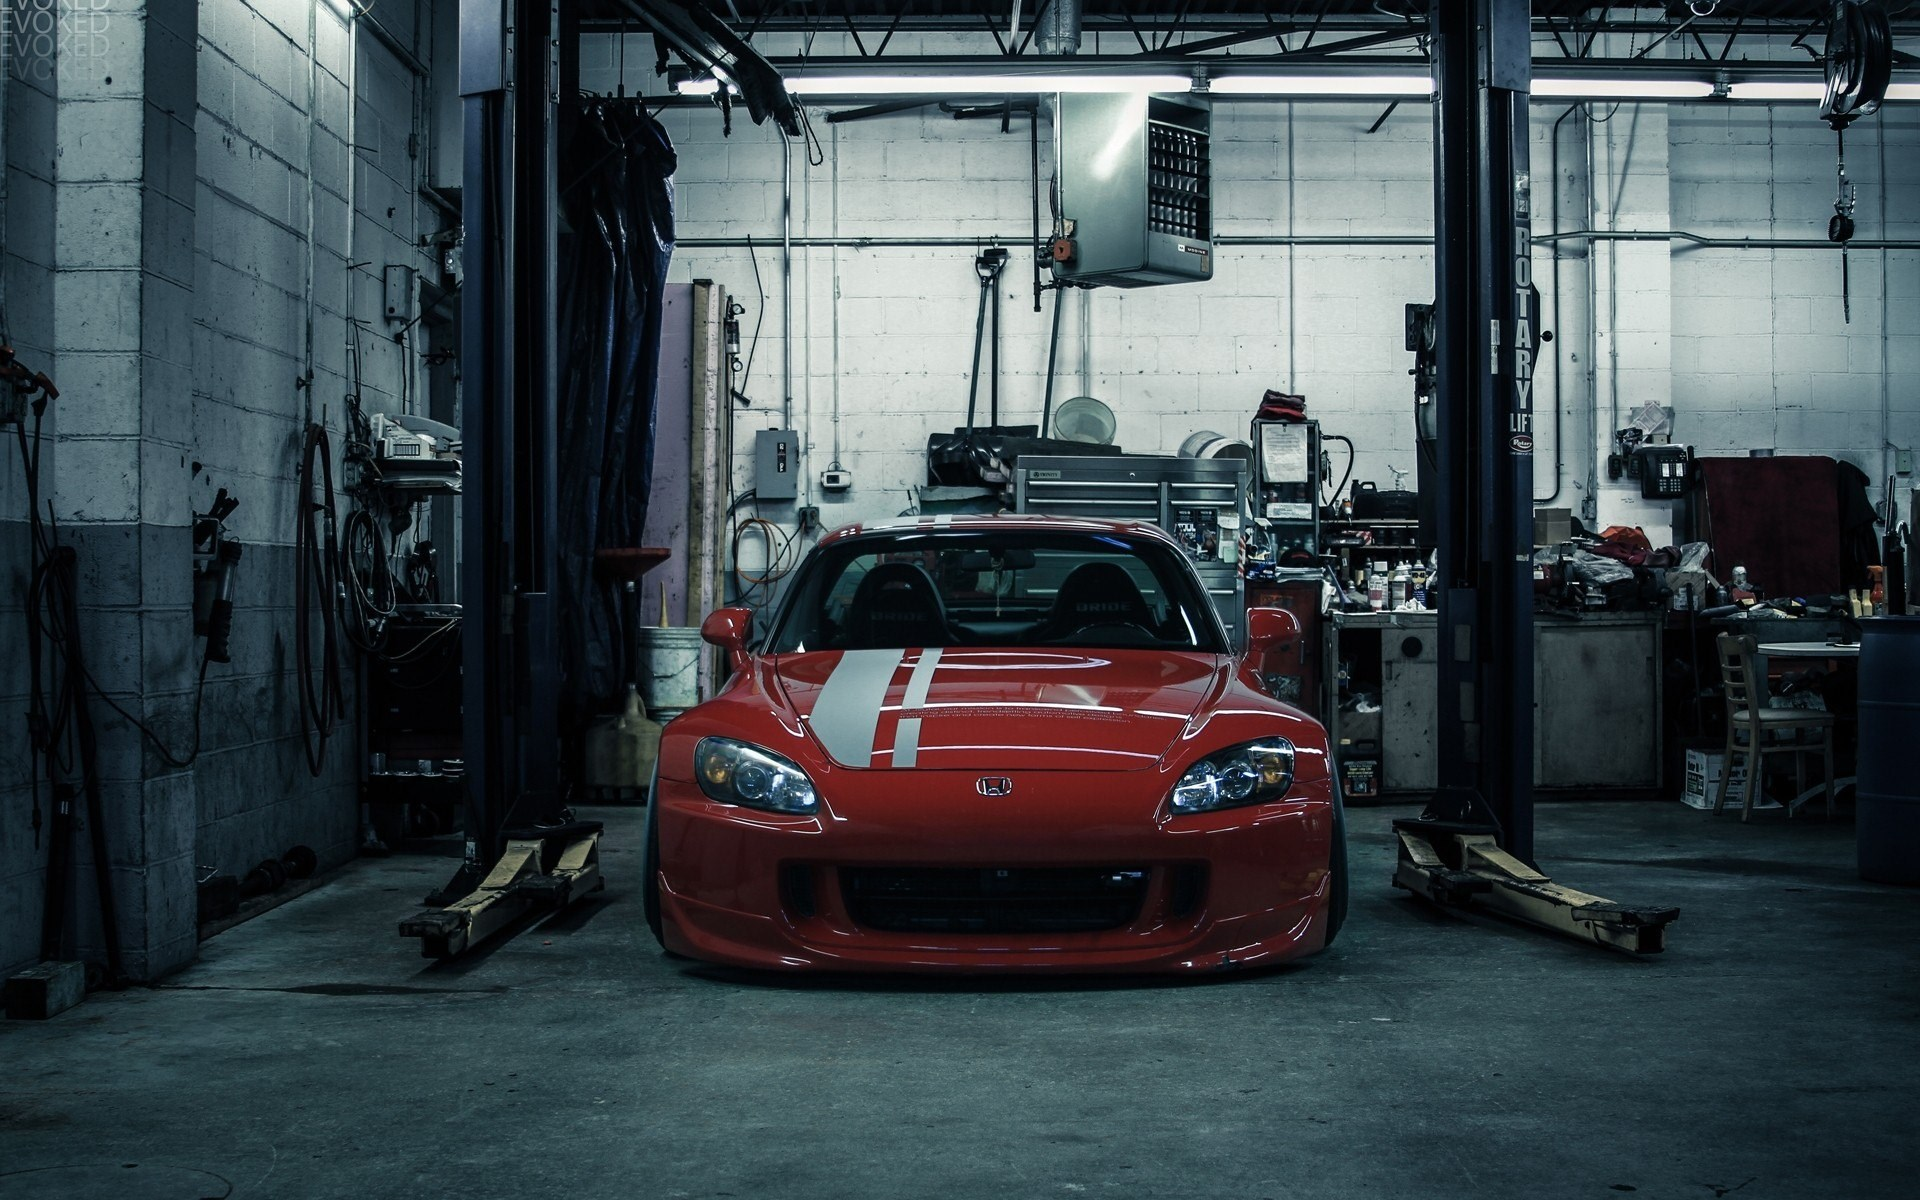 Top Honda S2000 Picture In High Quality Goldwallpapers